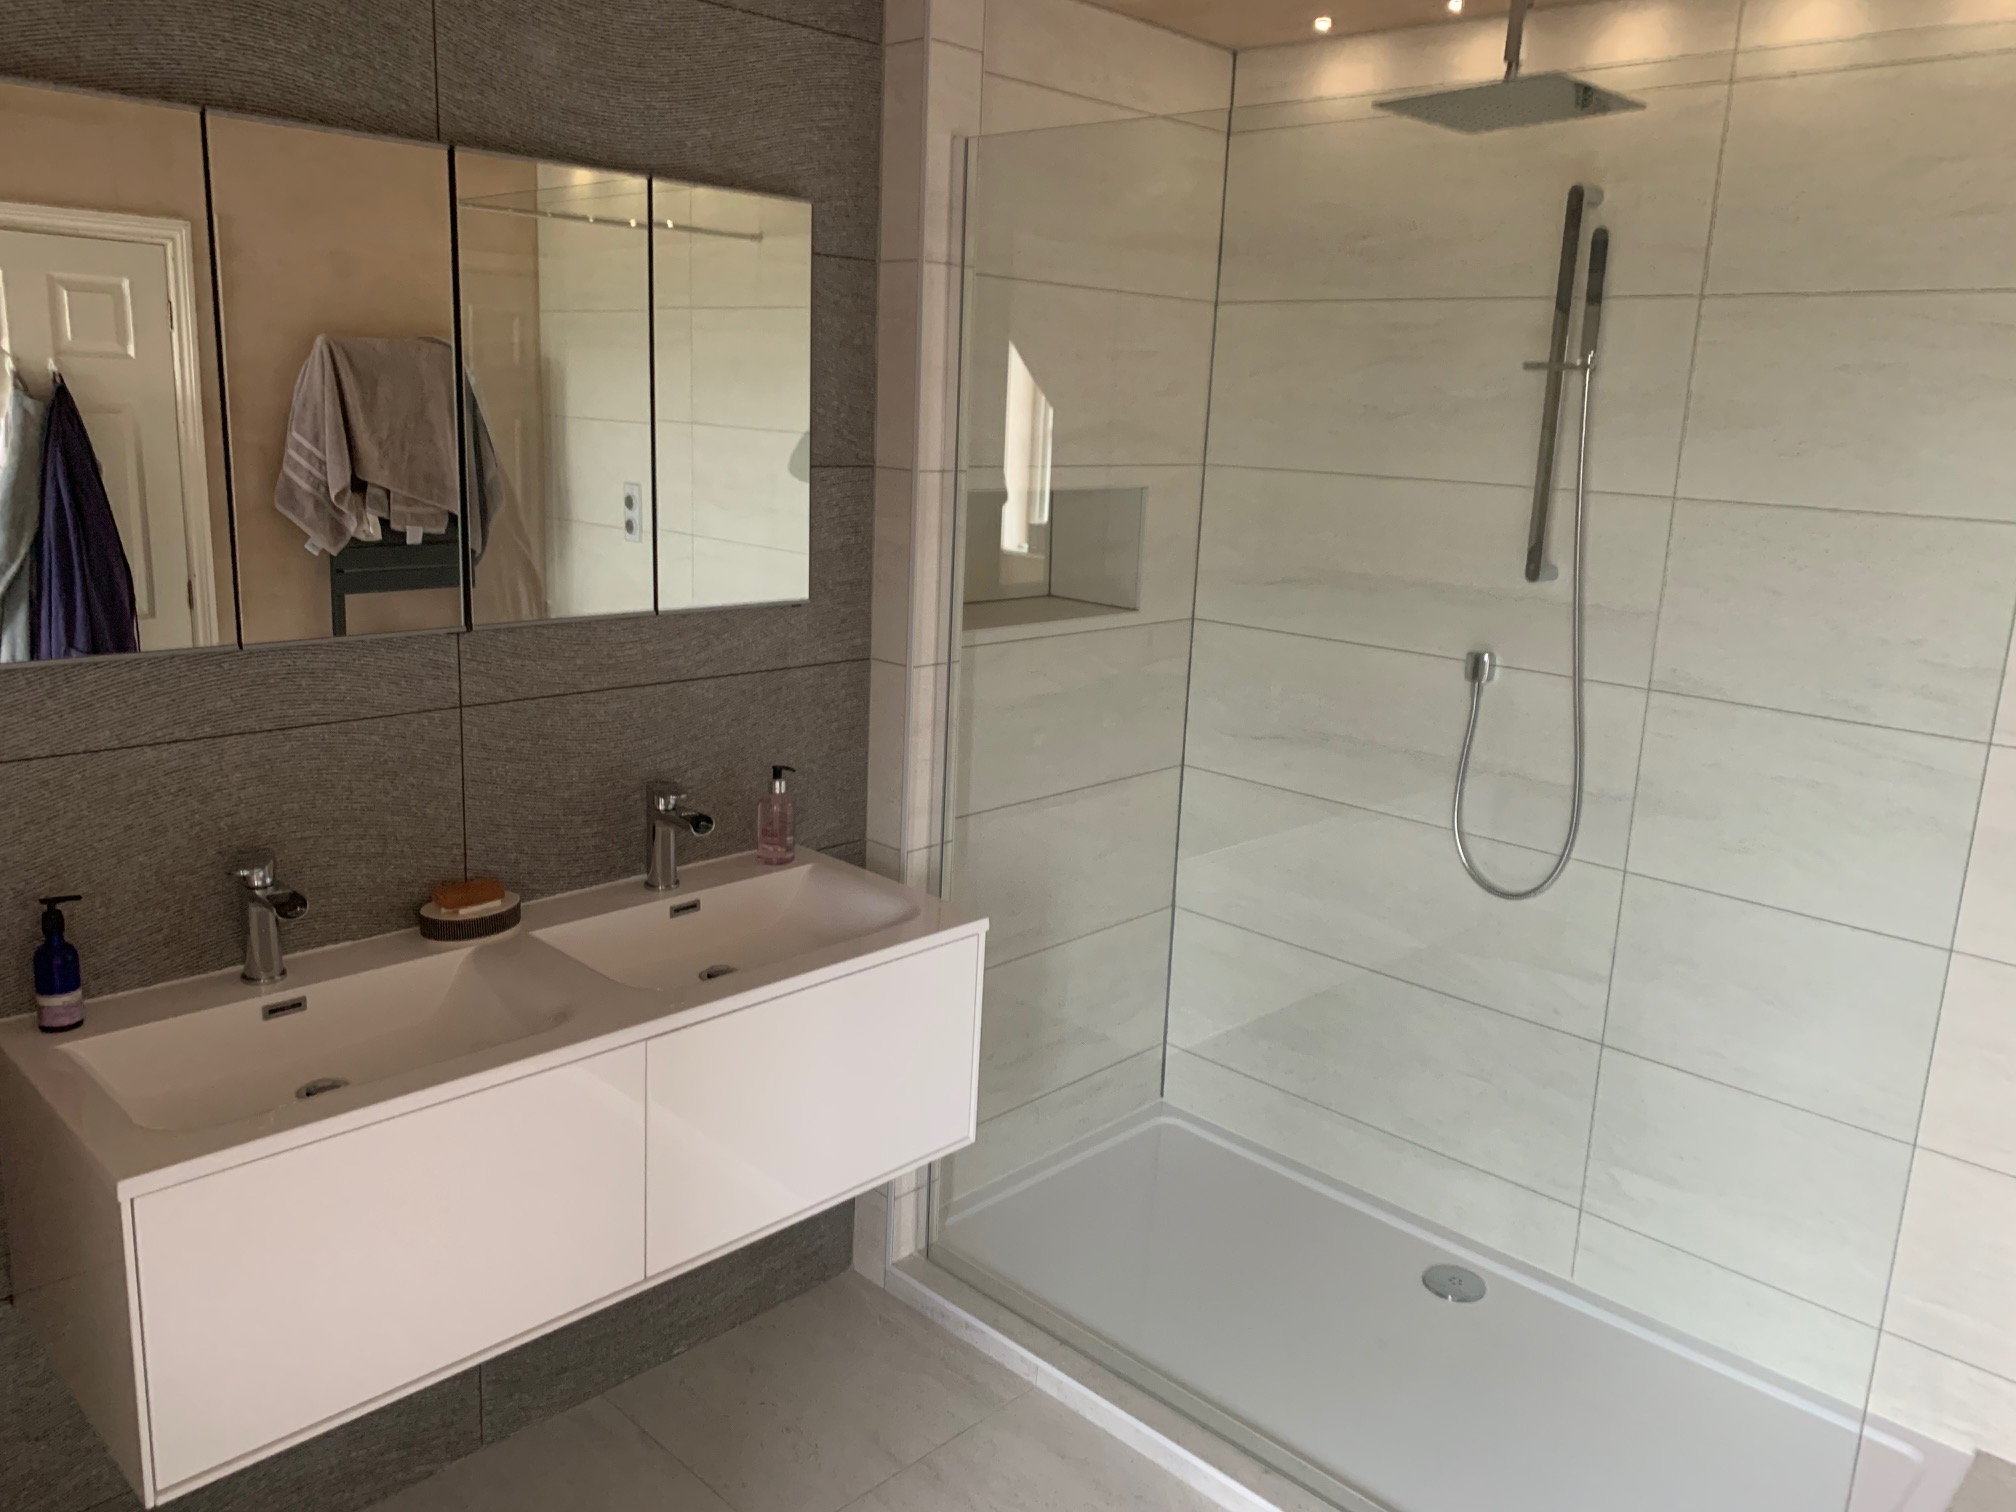 IMG_6184 - Bathroom Fitters Bristol